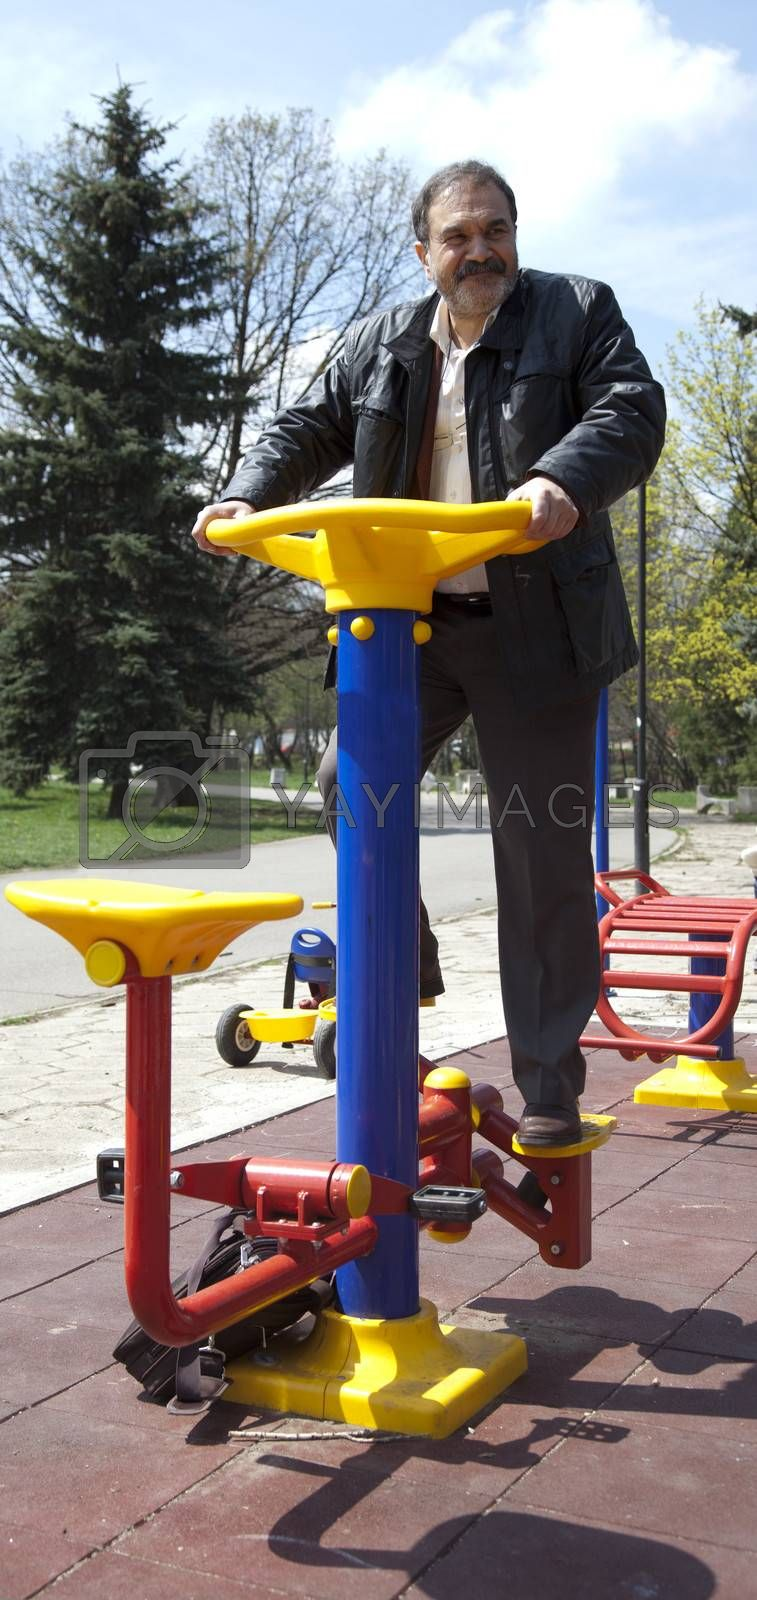 Adult man exercising on colourful fitness machine in park